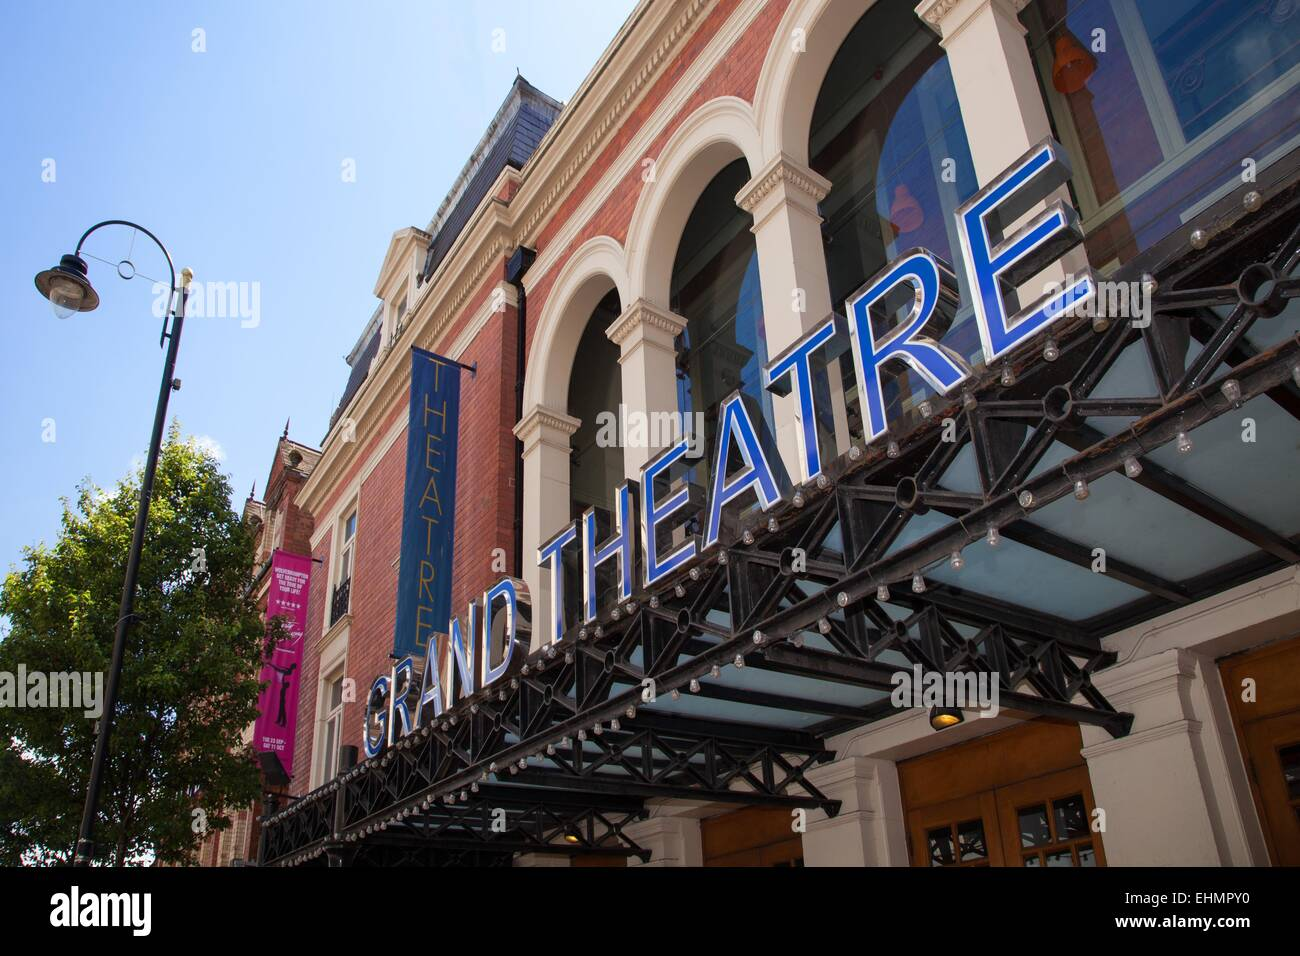 The Grand Theatre Wolverhampton - Stock Image